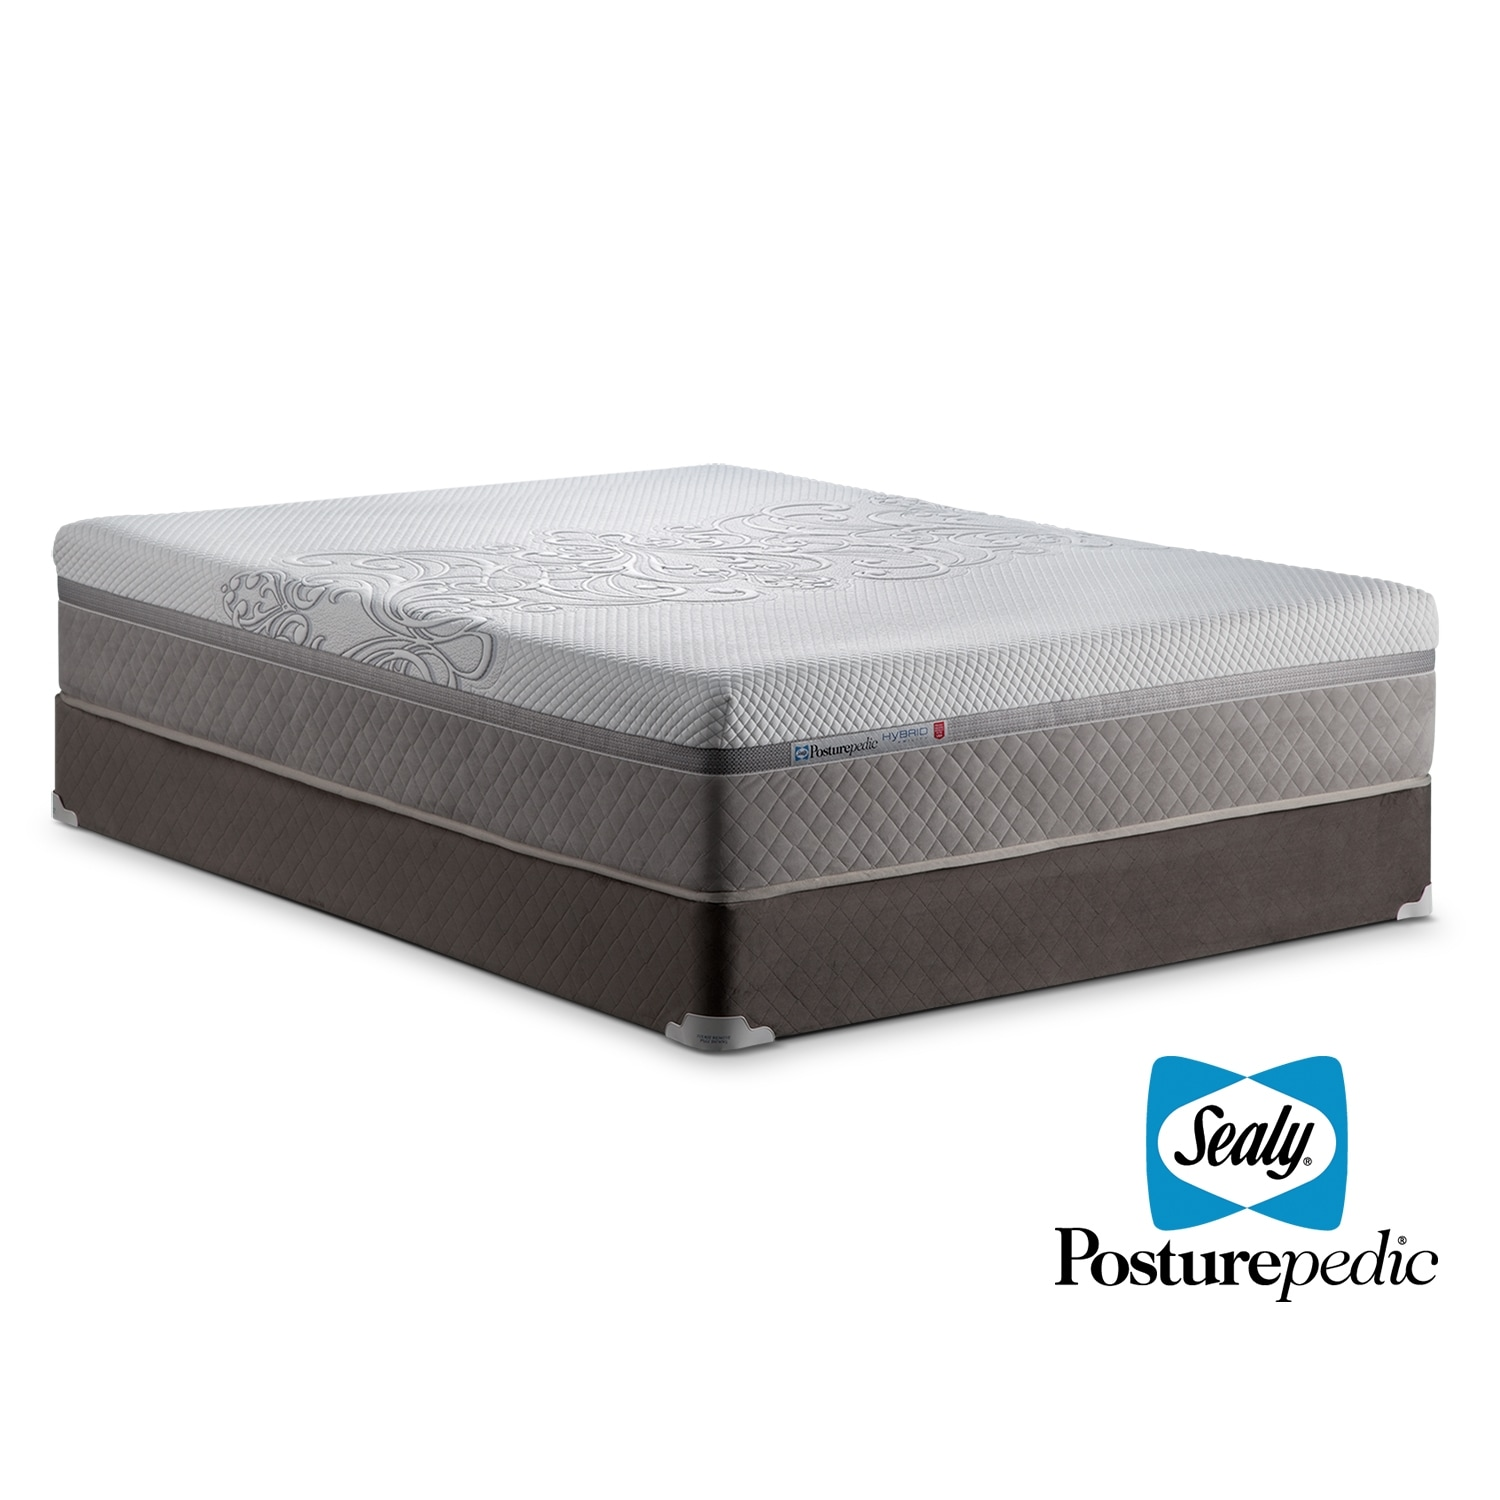 Memory Foam Mattress Steel Bed Frame Set King Queen Full Twin Bed Mattress Sale